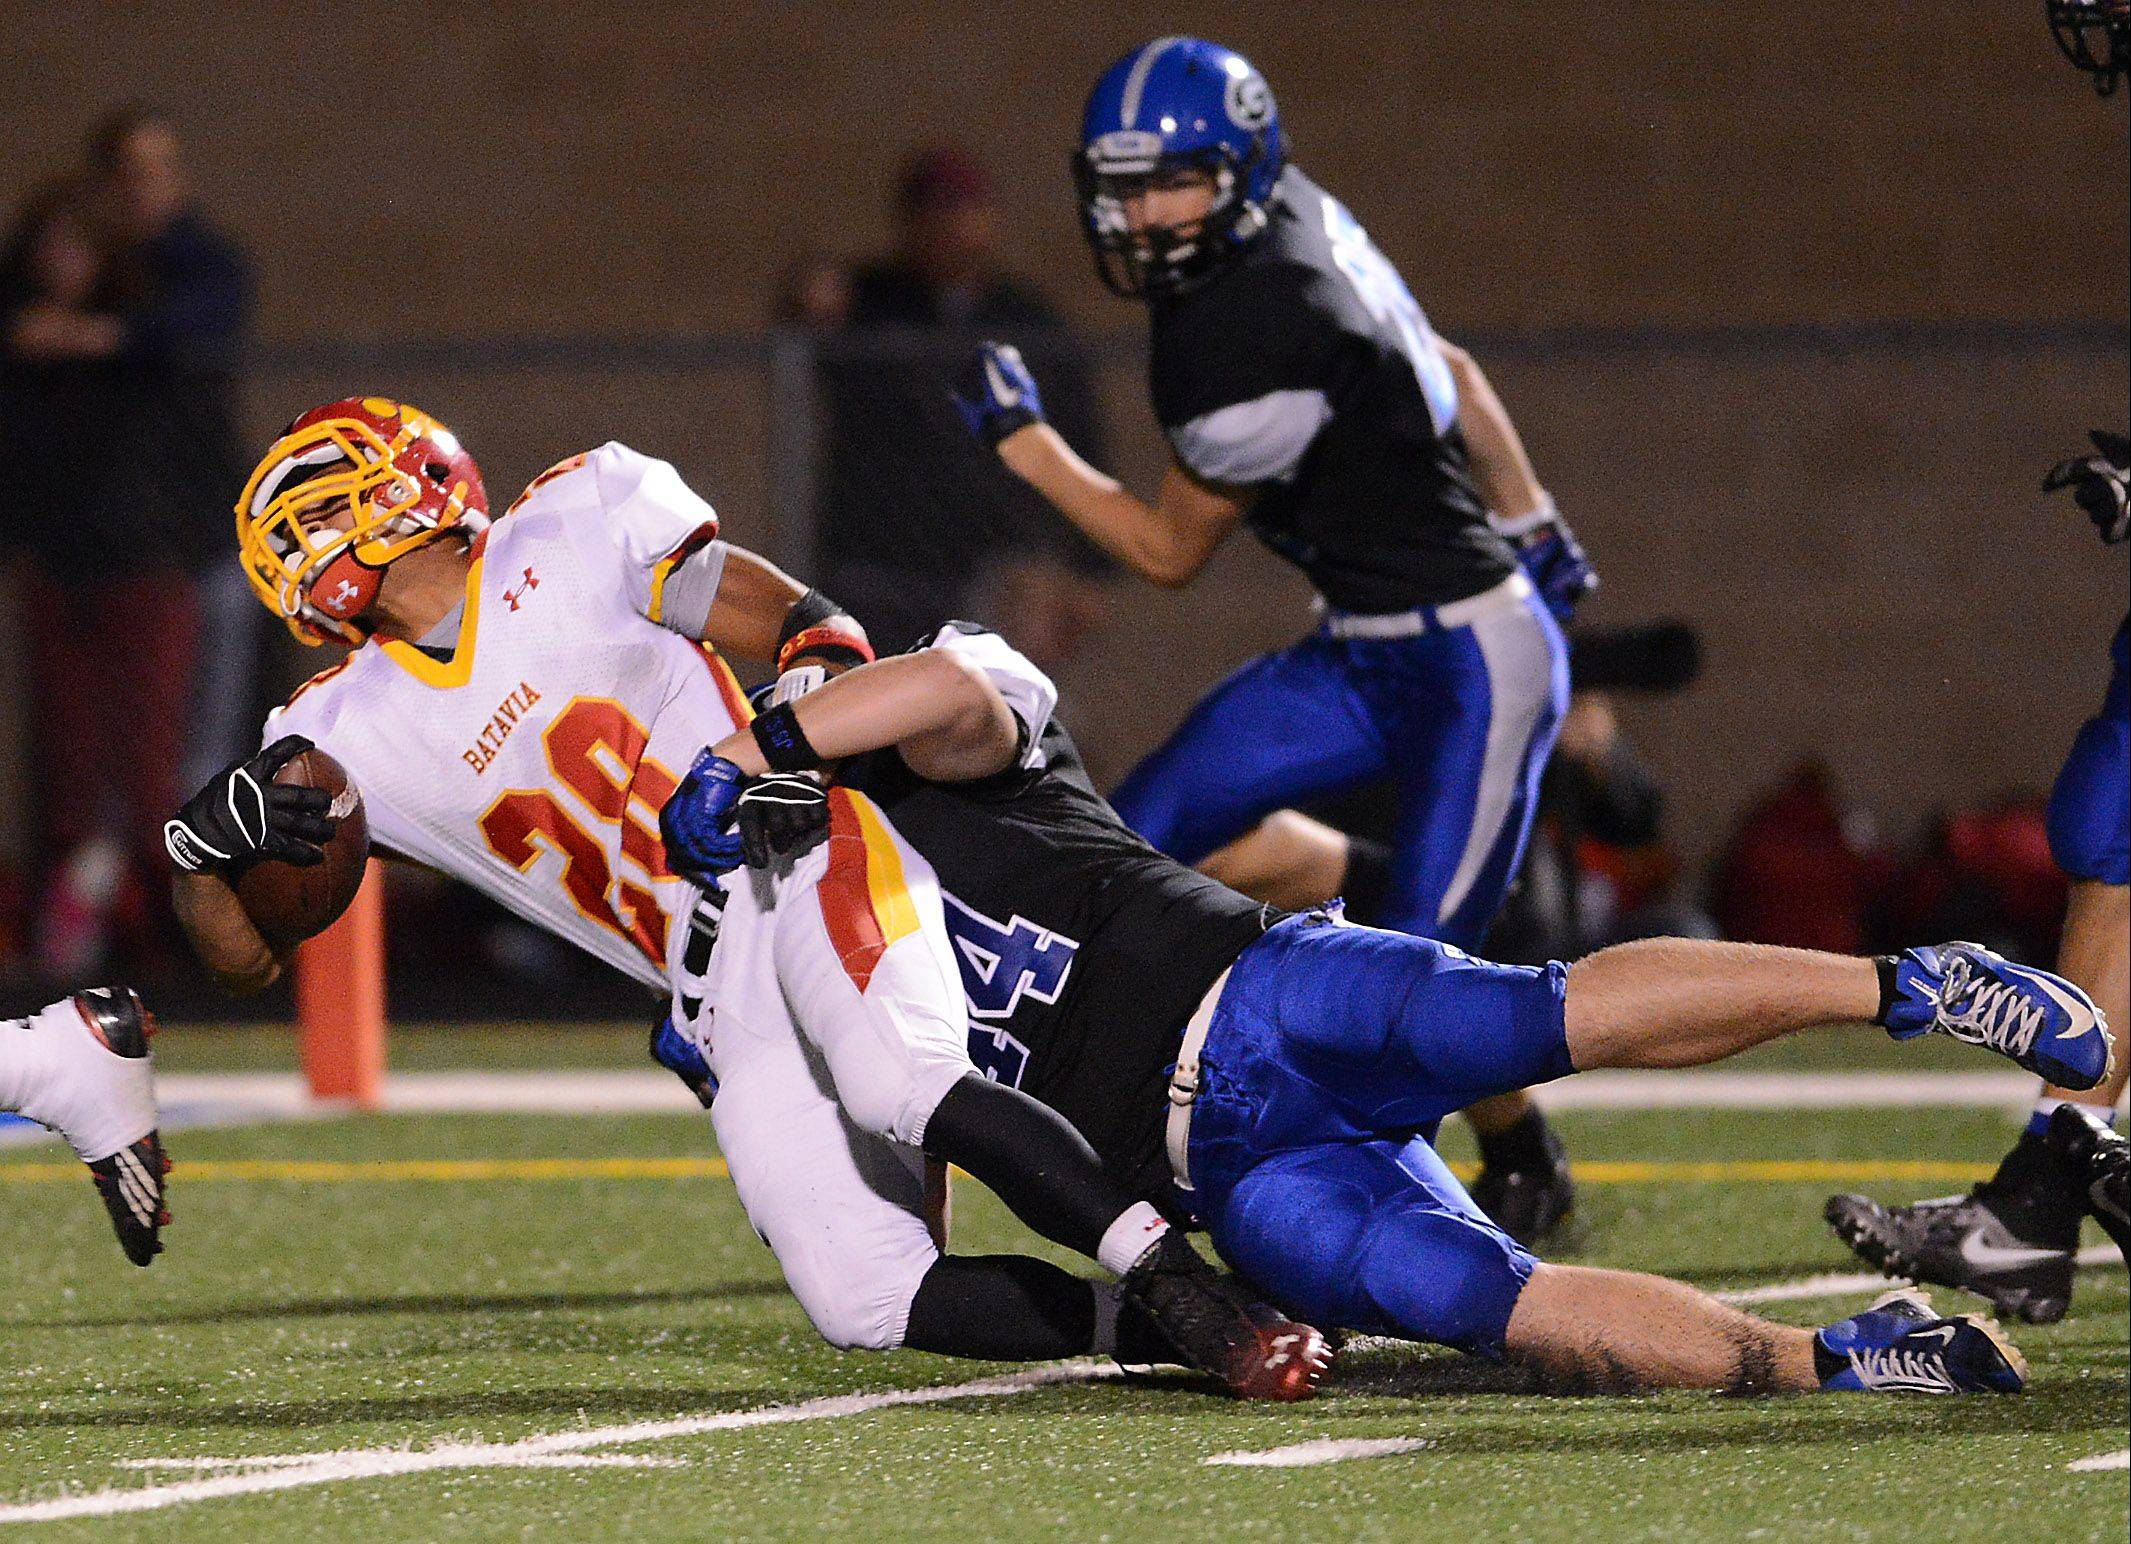 This was one of two touchdowns for Batavia senior Anthony Scaccia on Friday at Geneva.